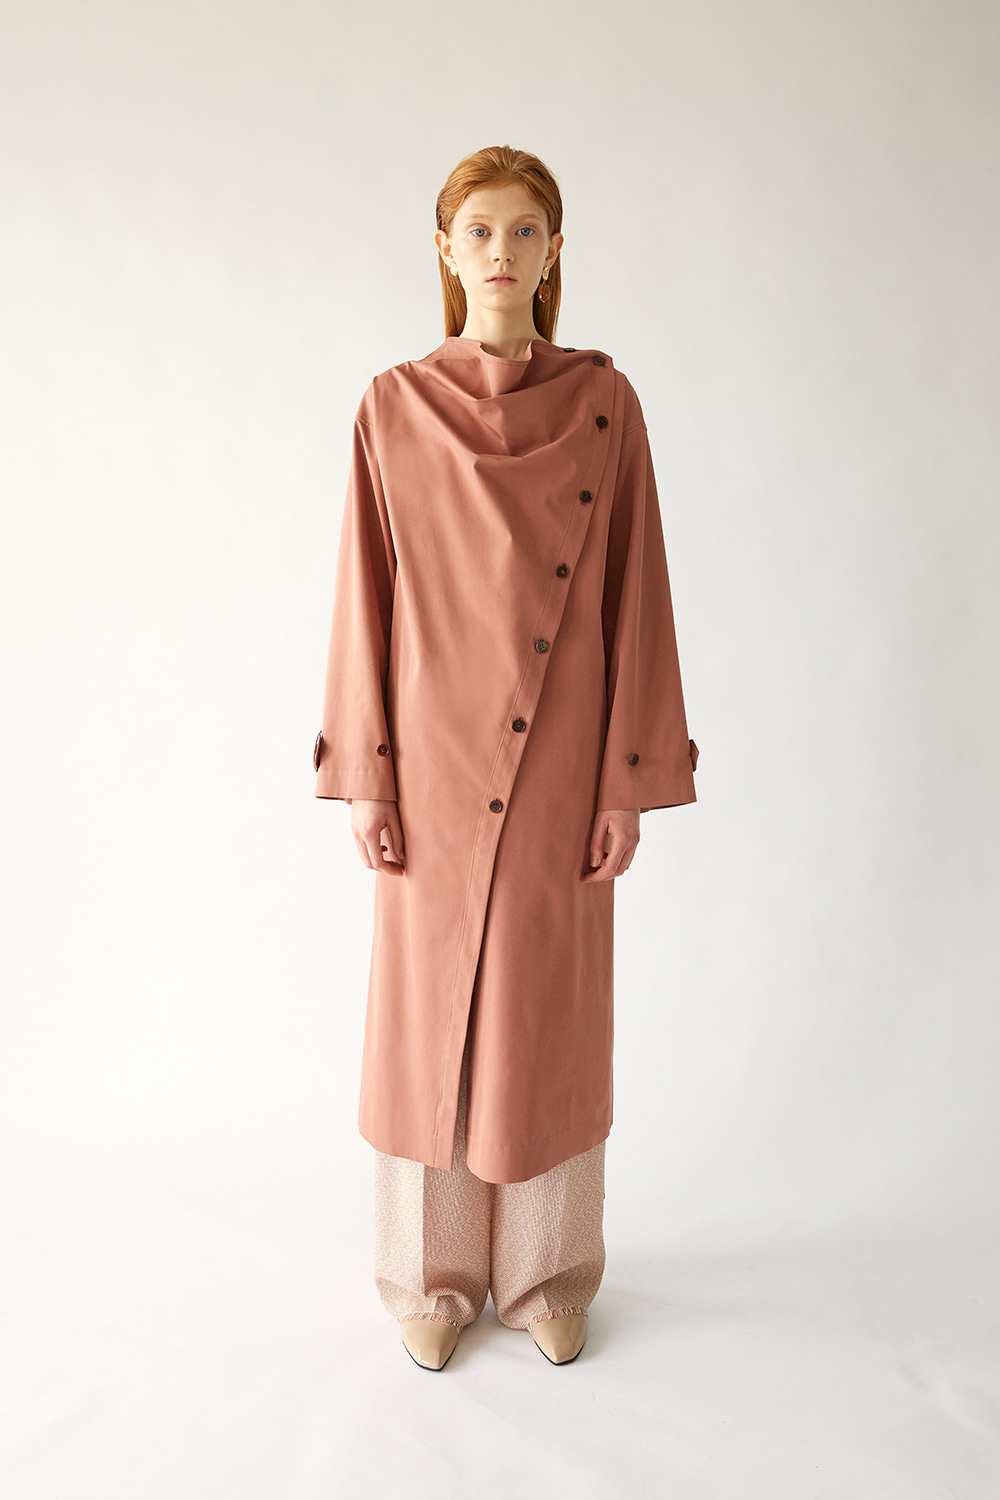 SS19 COWL NECK COTTON TRENCH (BRICK)